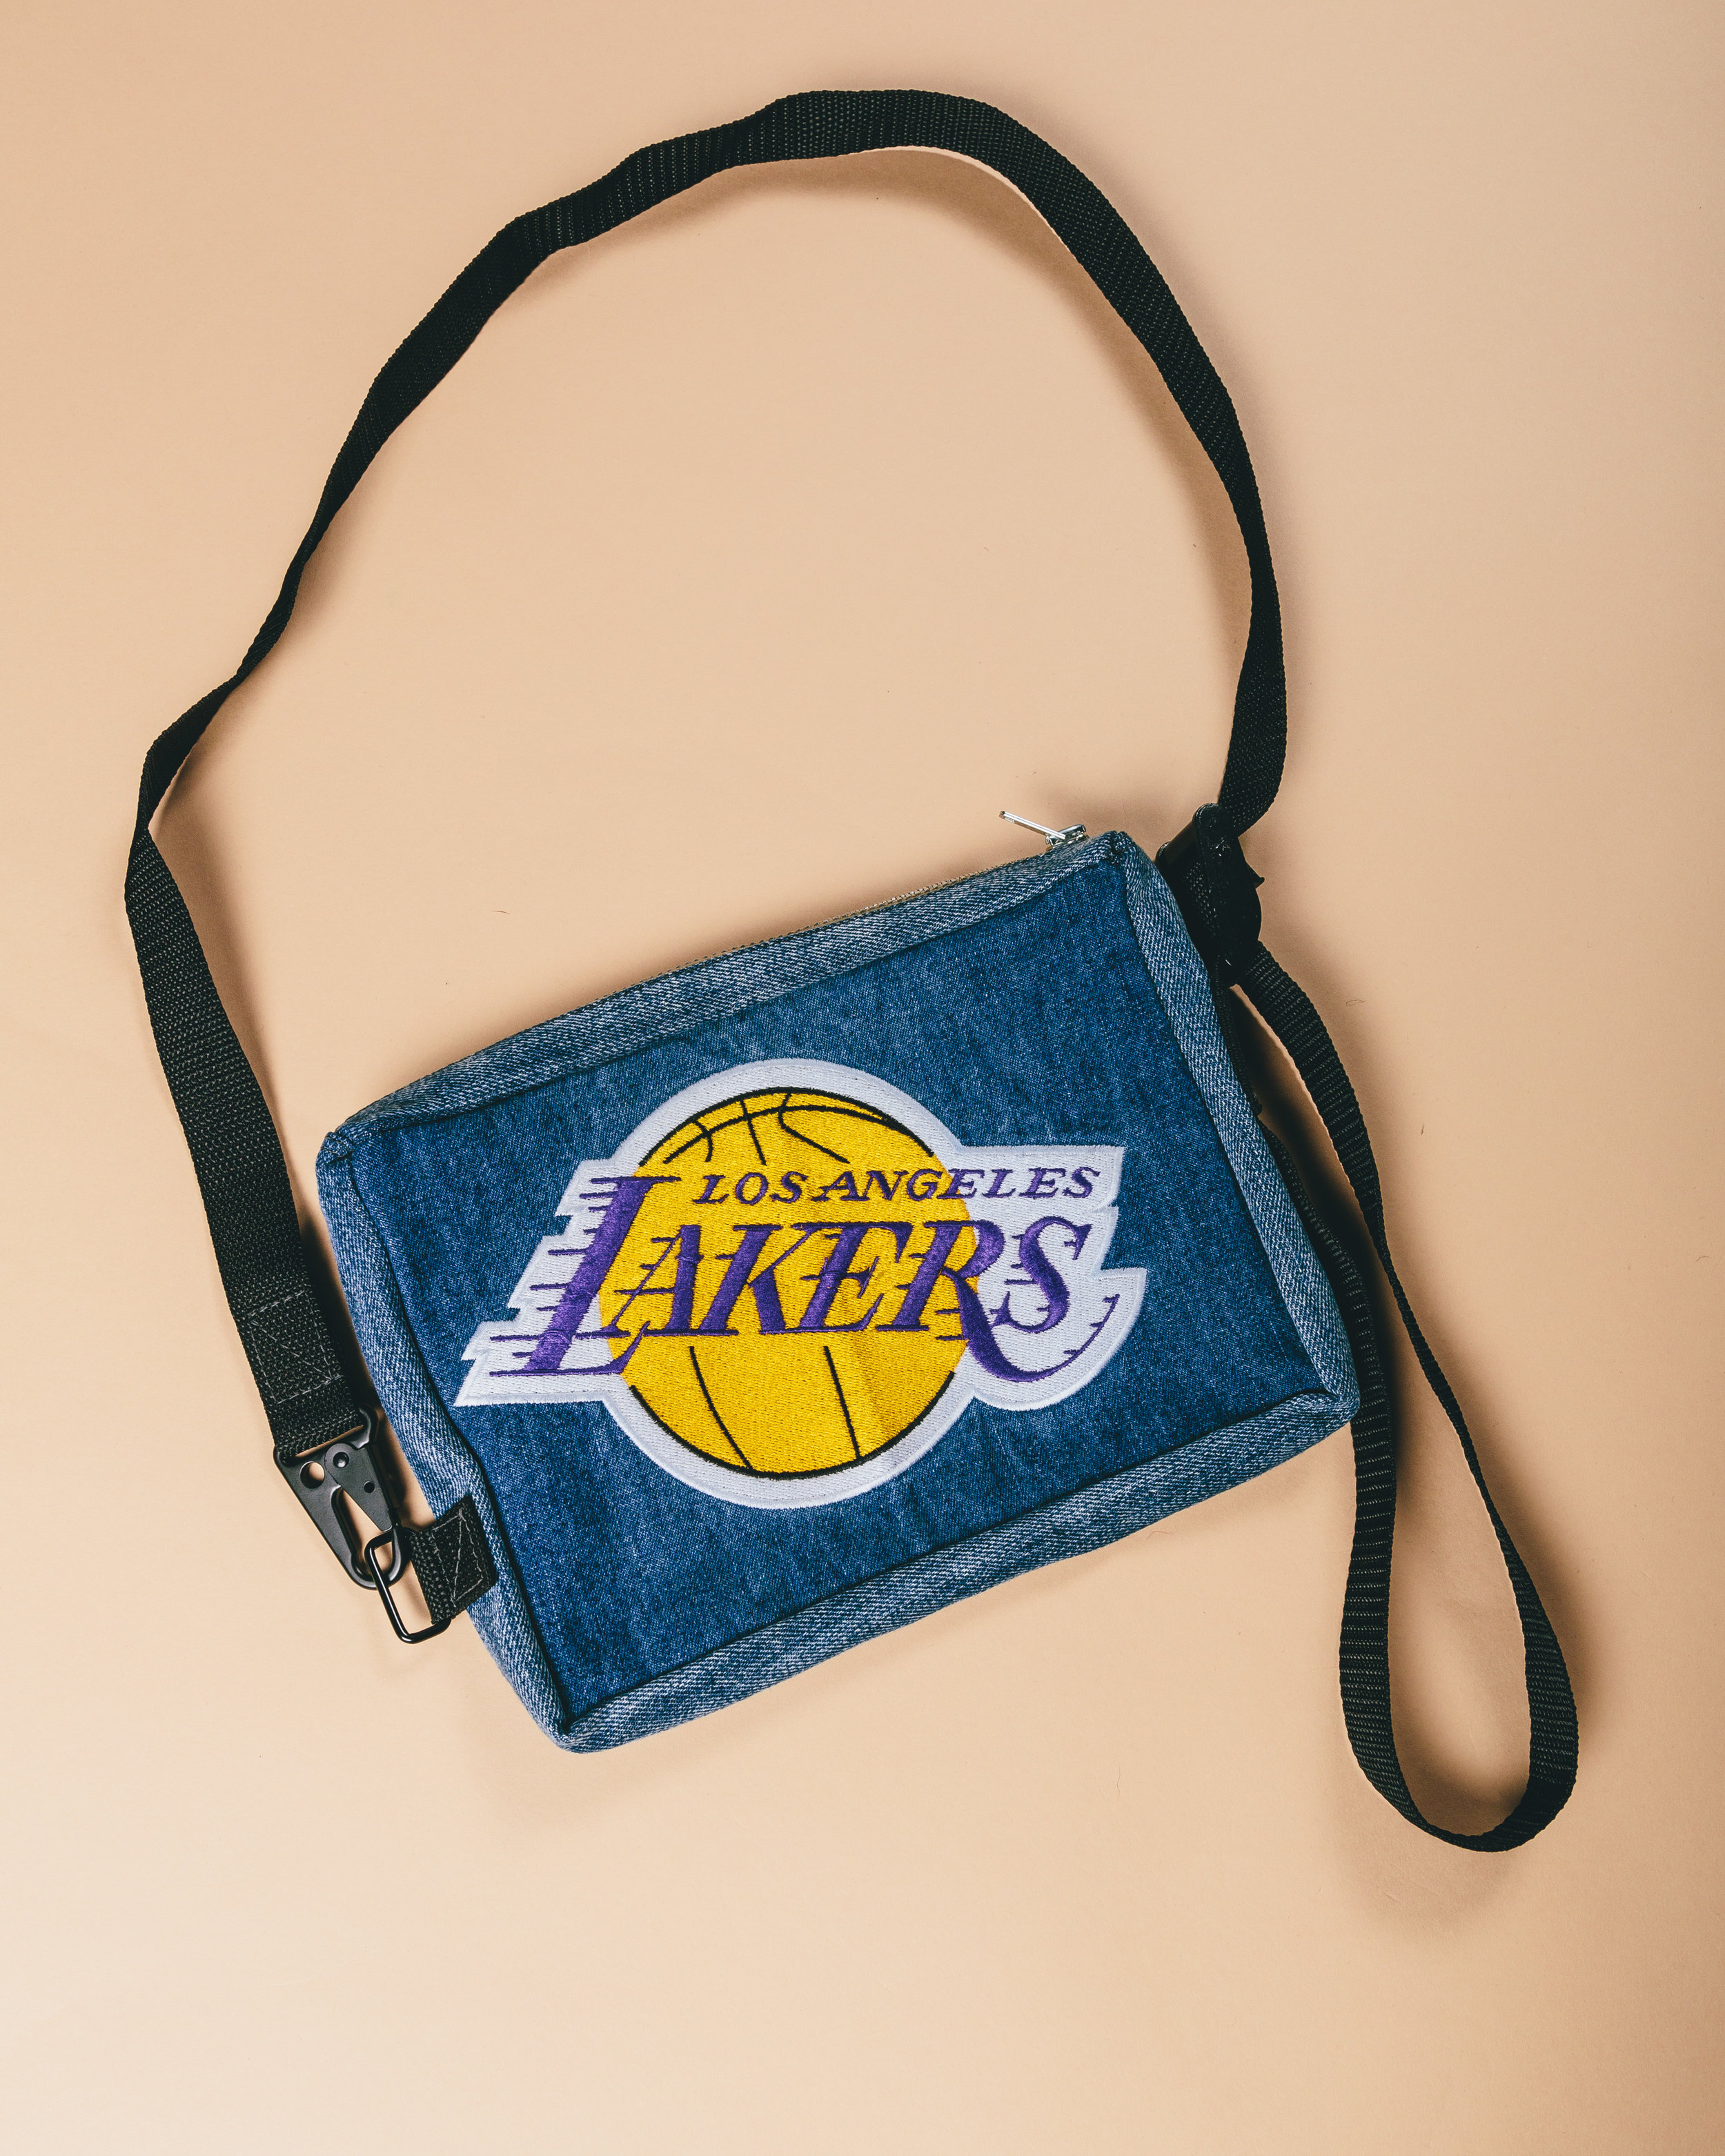 Lakers side bag - Reconstructed from a pair of UNK denim from the early 2000's.